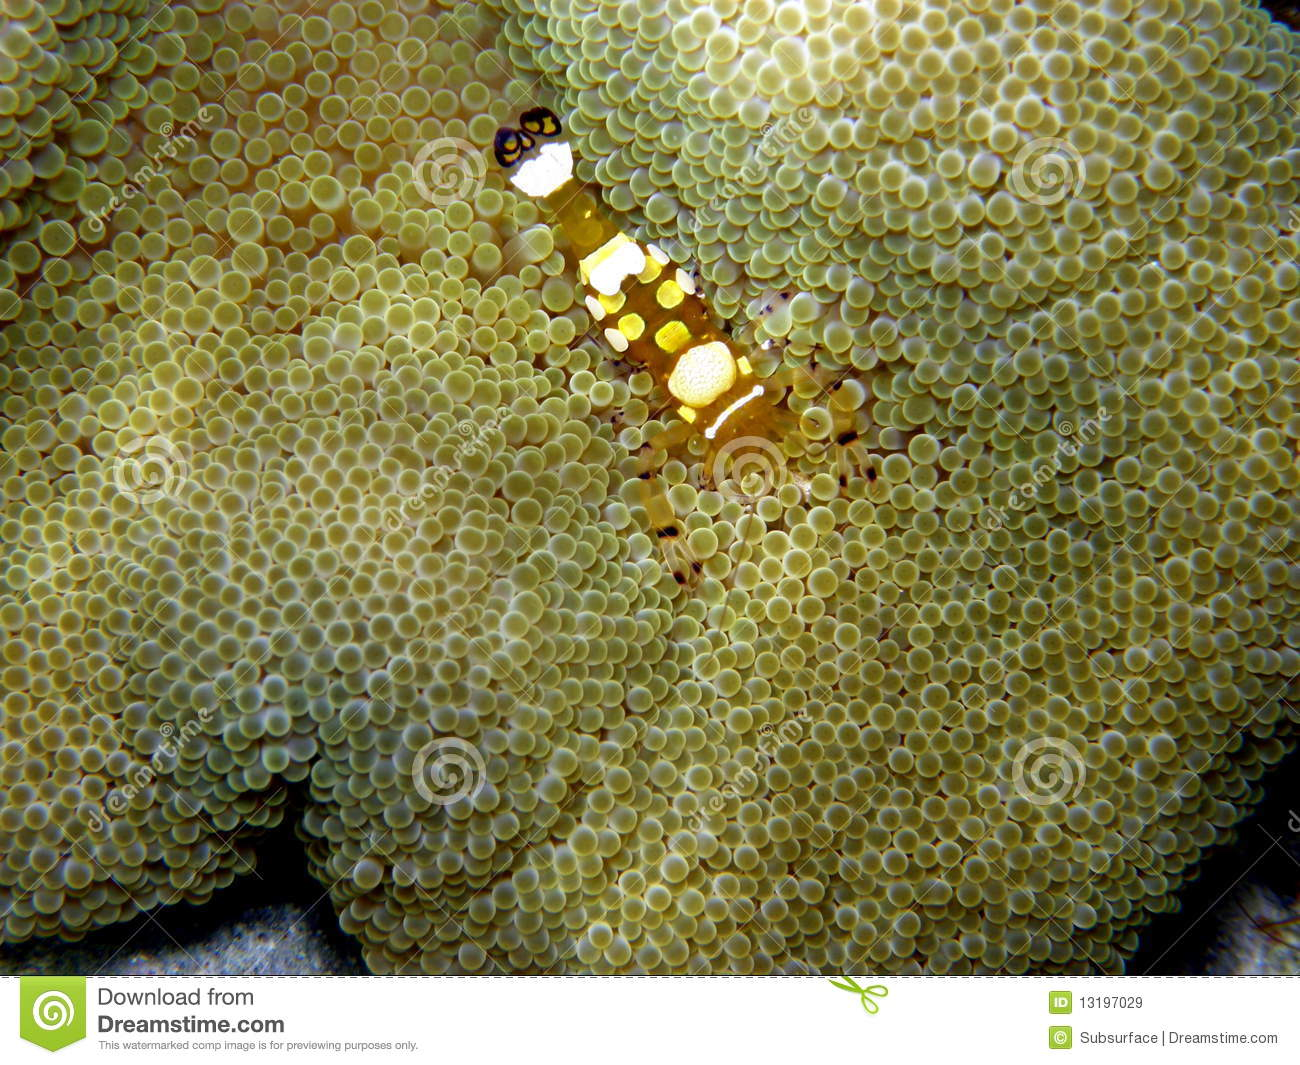 Pacific Carpet Anemone Popcorn Shrimp Stock Image Image Of Animal Descriptive 13197029